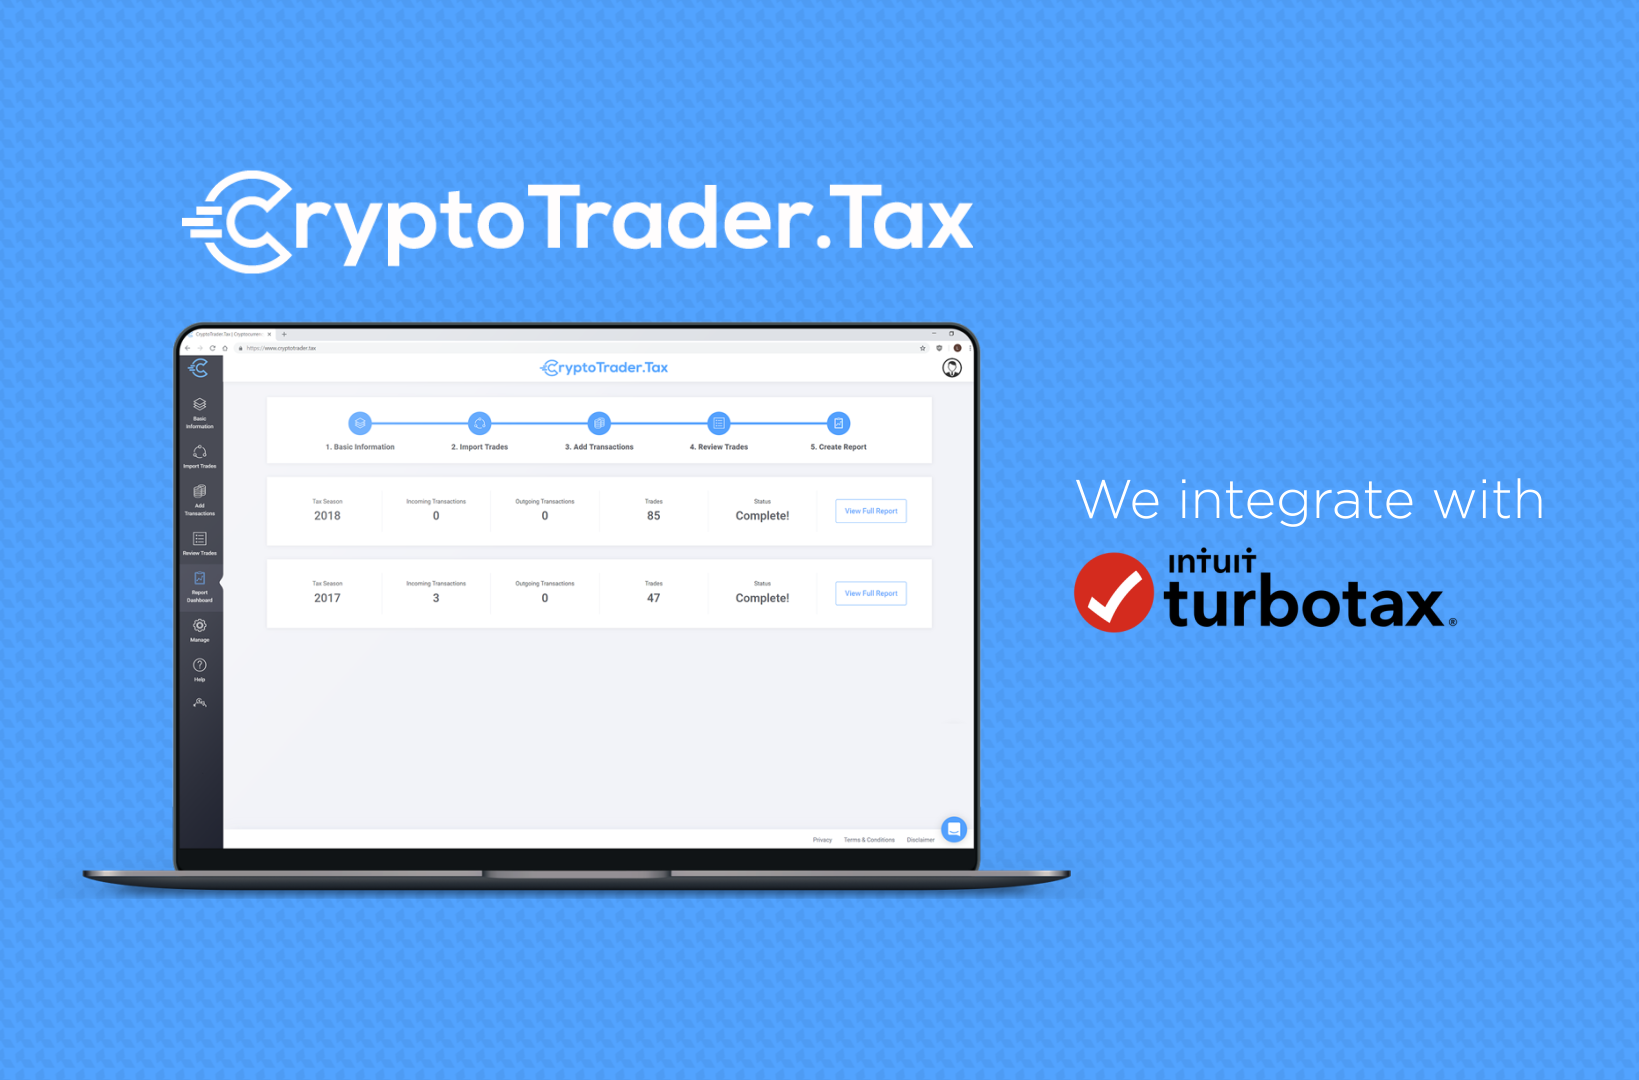 Cryptocurrency Tax Software Leader CryptoTrader Tax